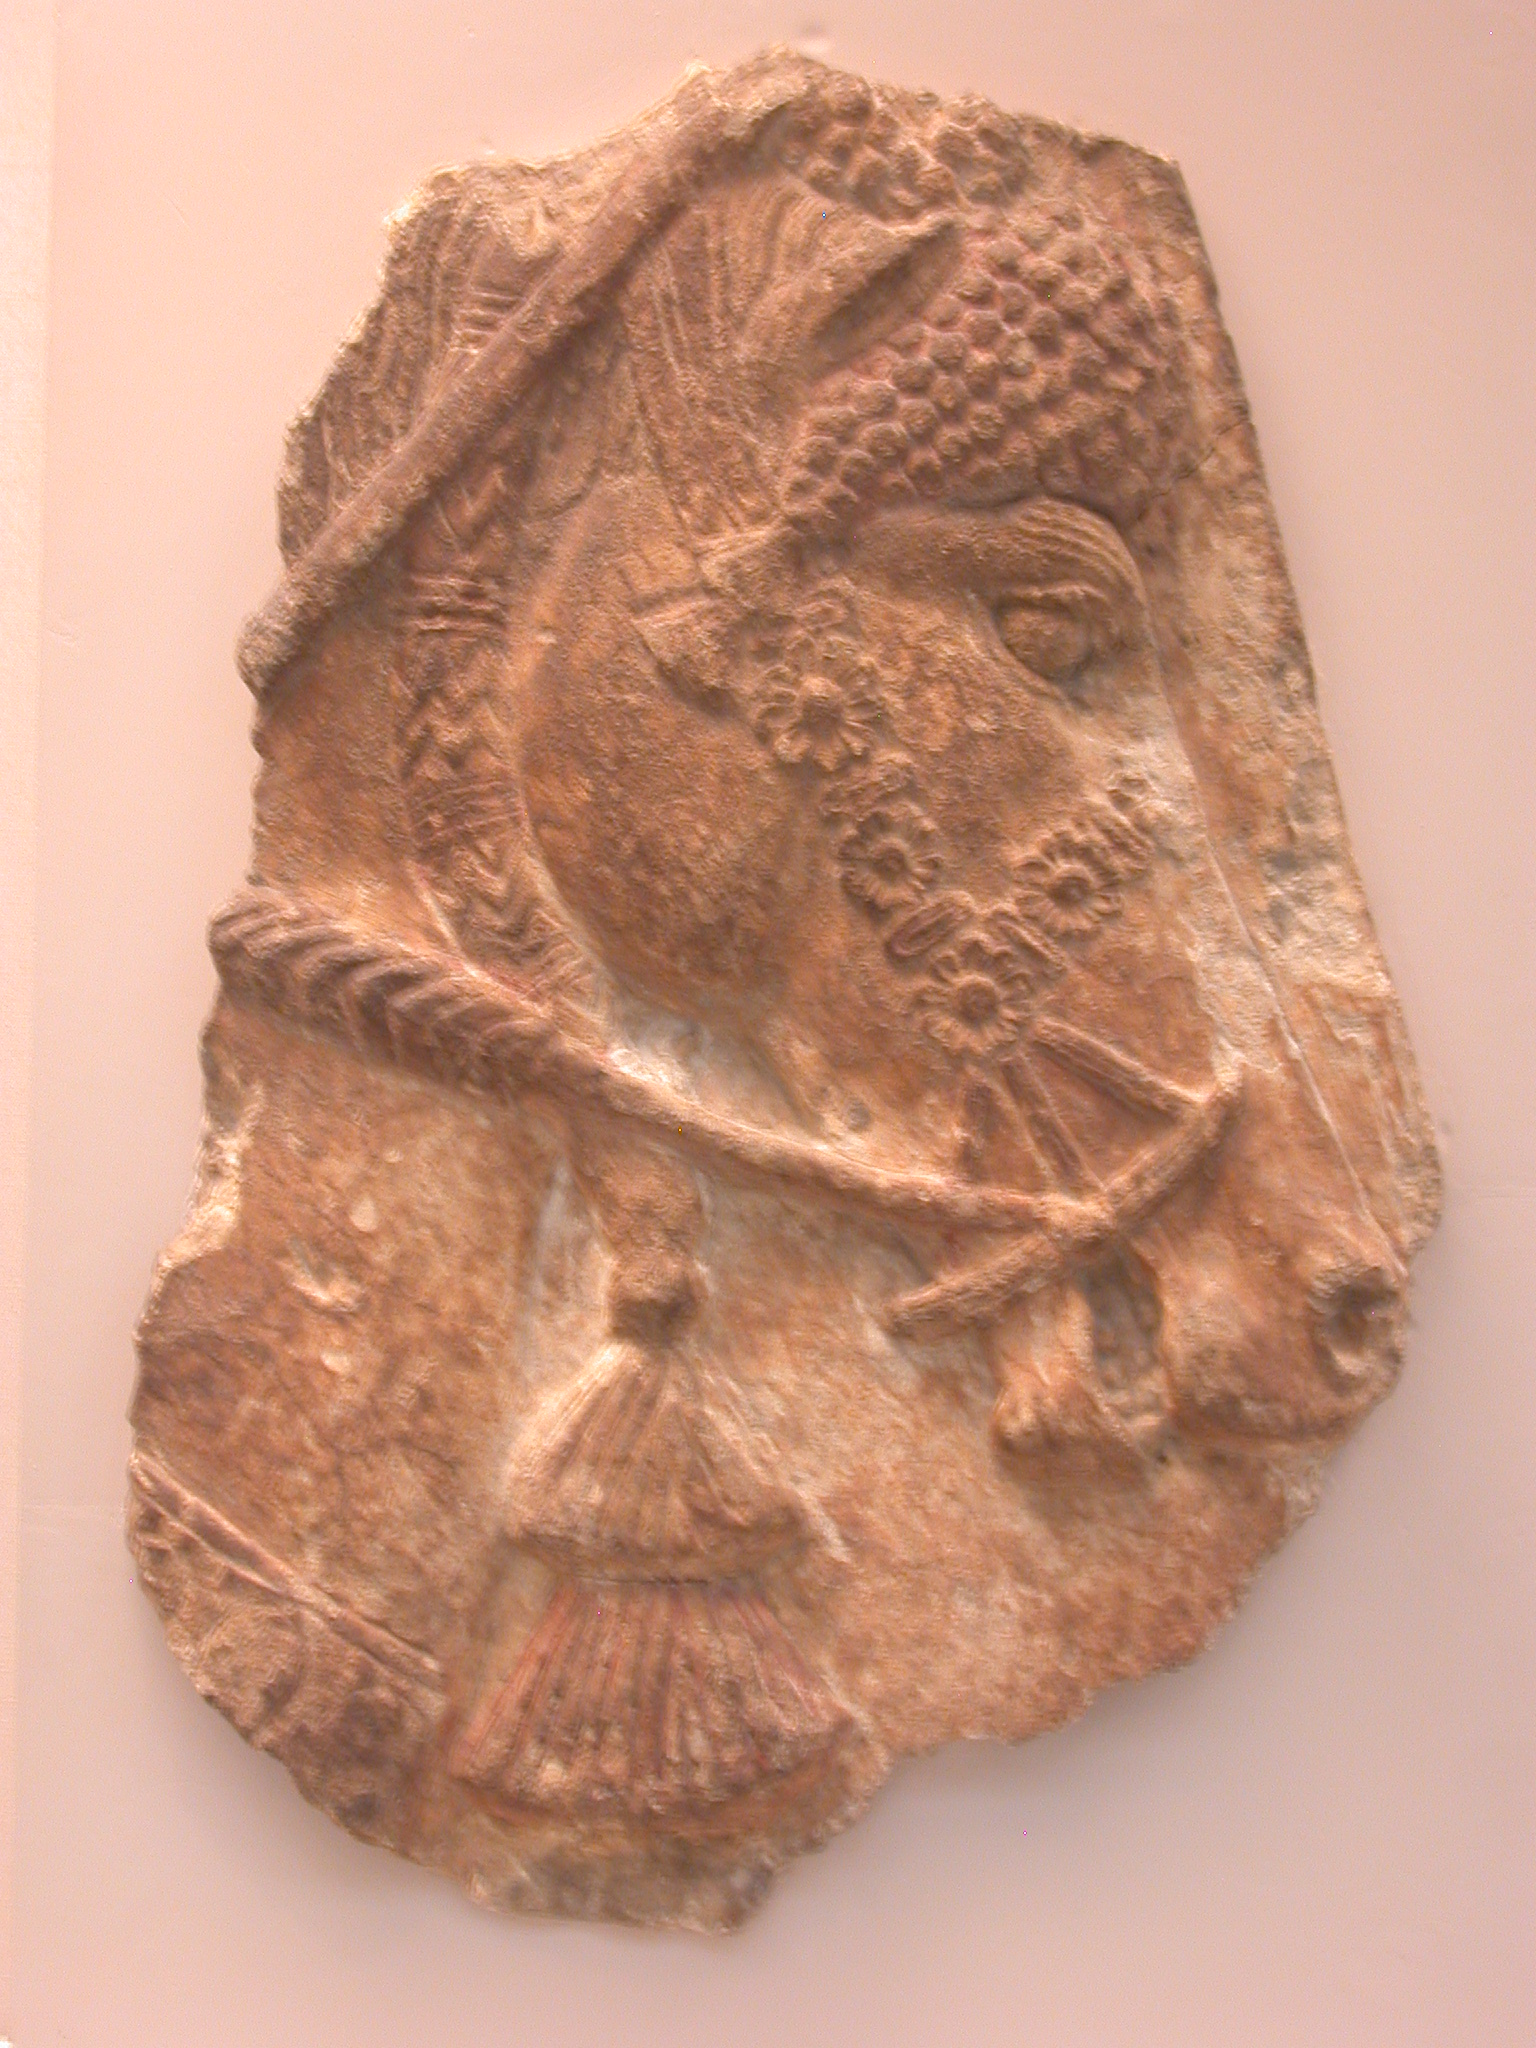 Horse Head With Elaborate Harness, Gypsum Wall Panel, About 710 BCE, Palace of Sargon, Khorsabad, Assyria, in British Museum, London, England